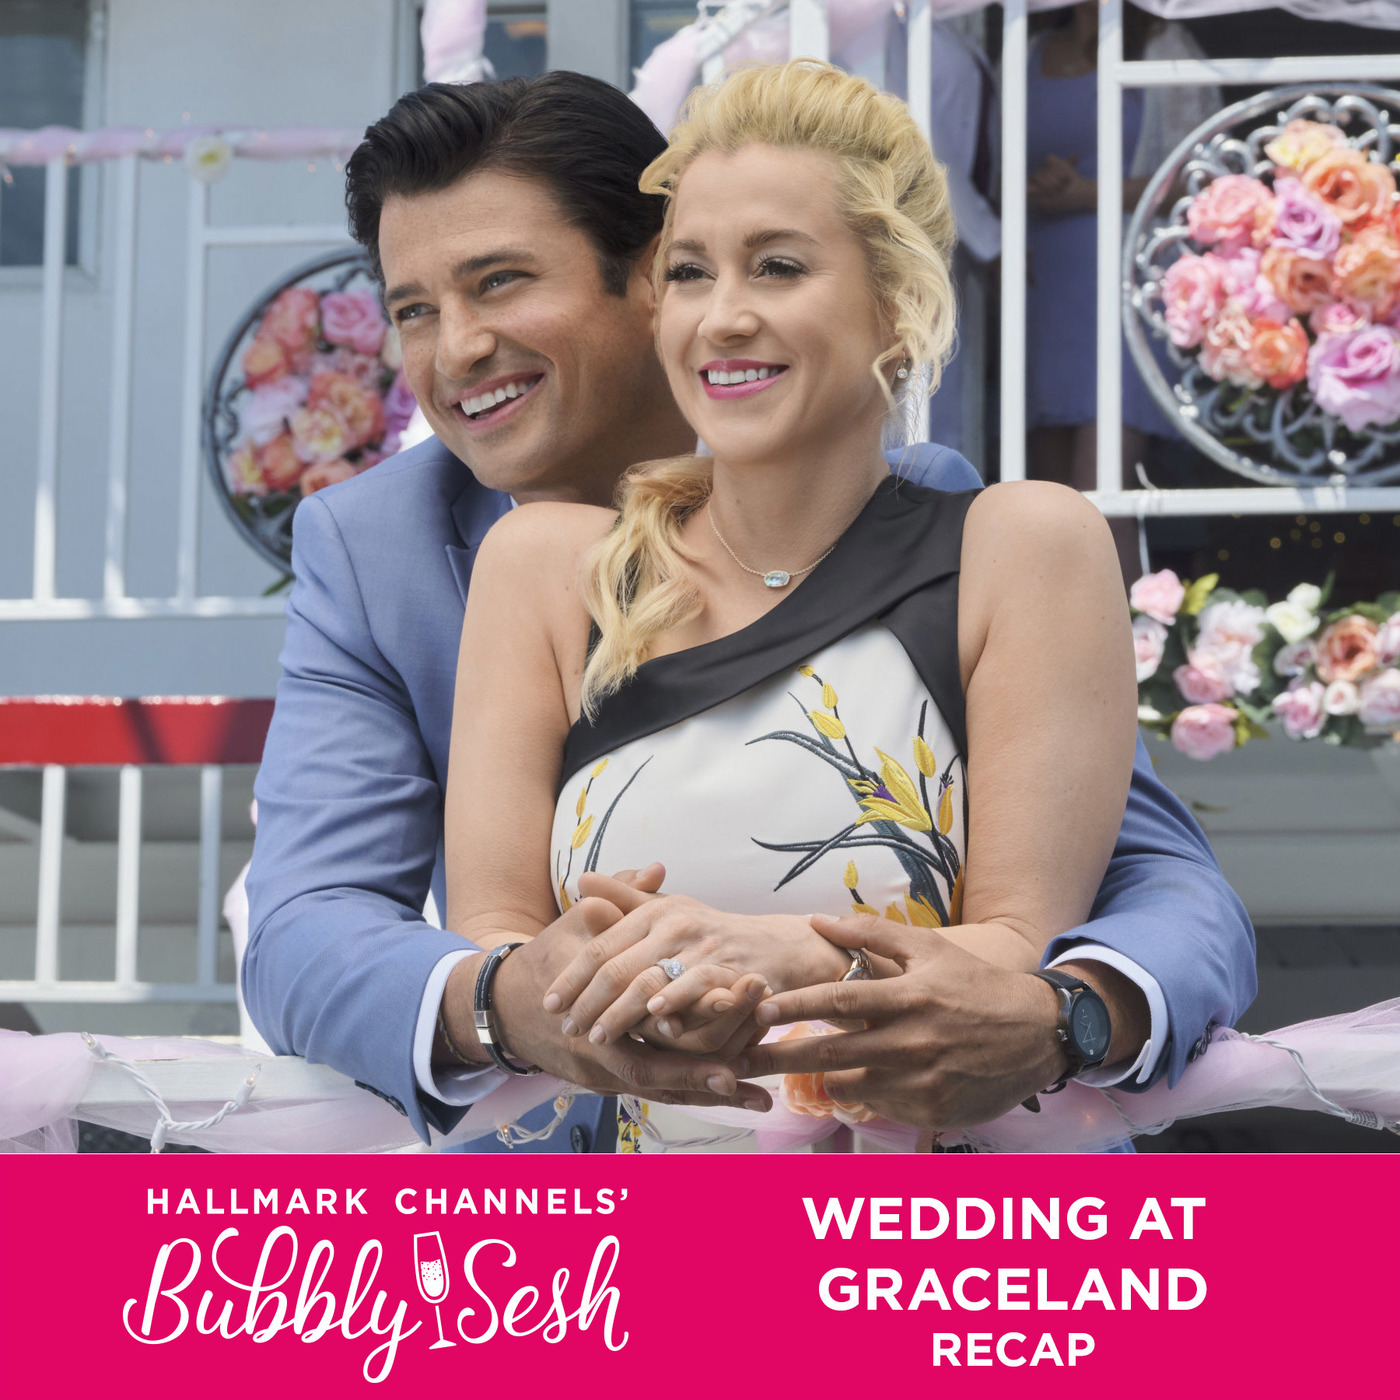 Wedding at Graceland - Recap